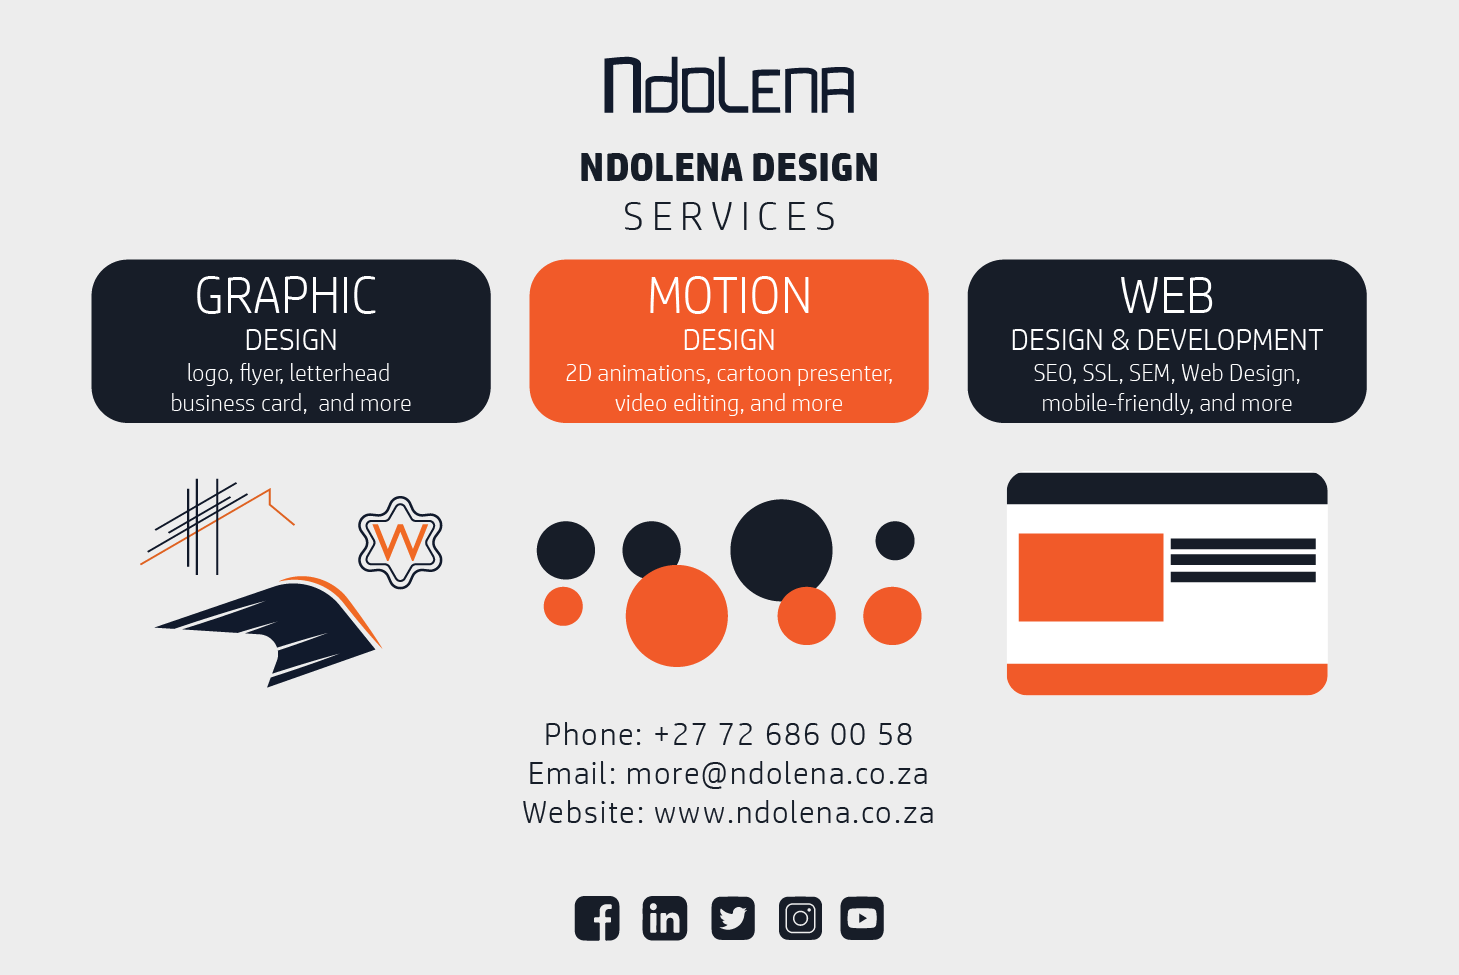 ndolena-design-services